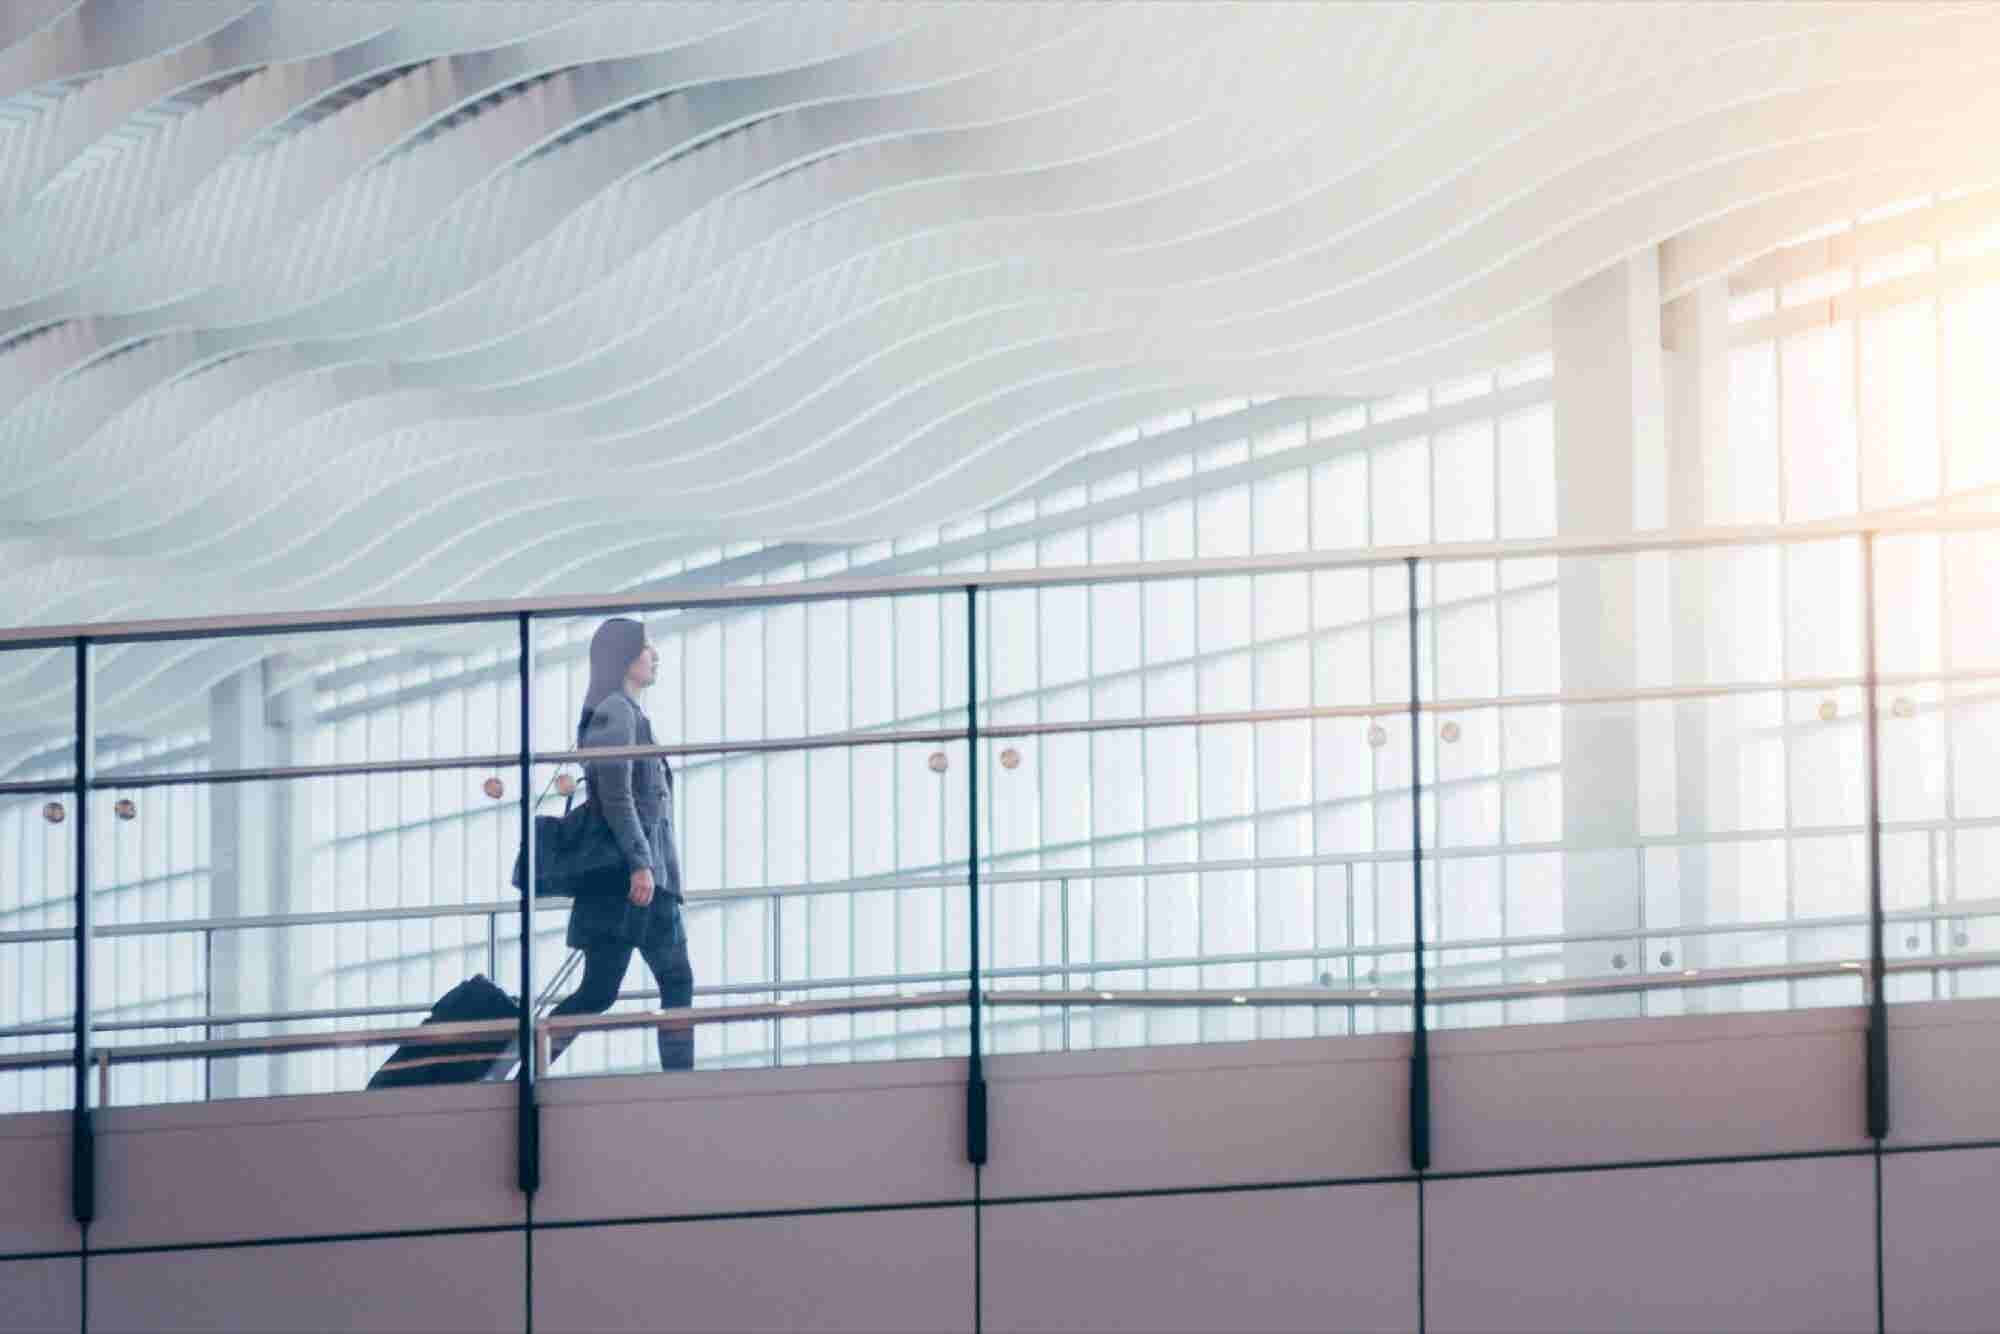 7 Tips to Keep Business Travel From Driving You Crazy